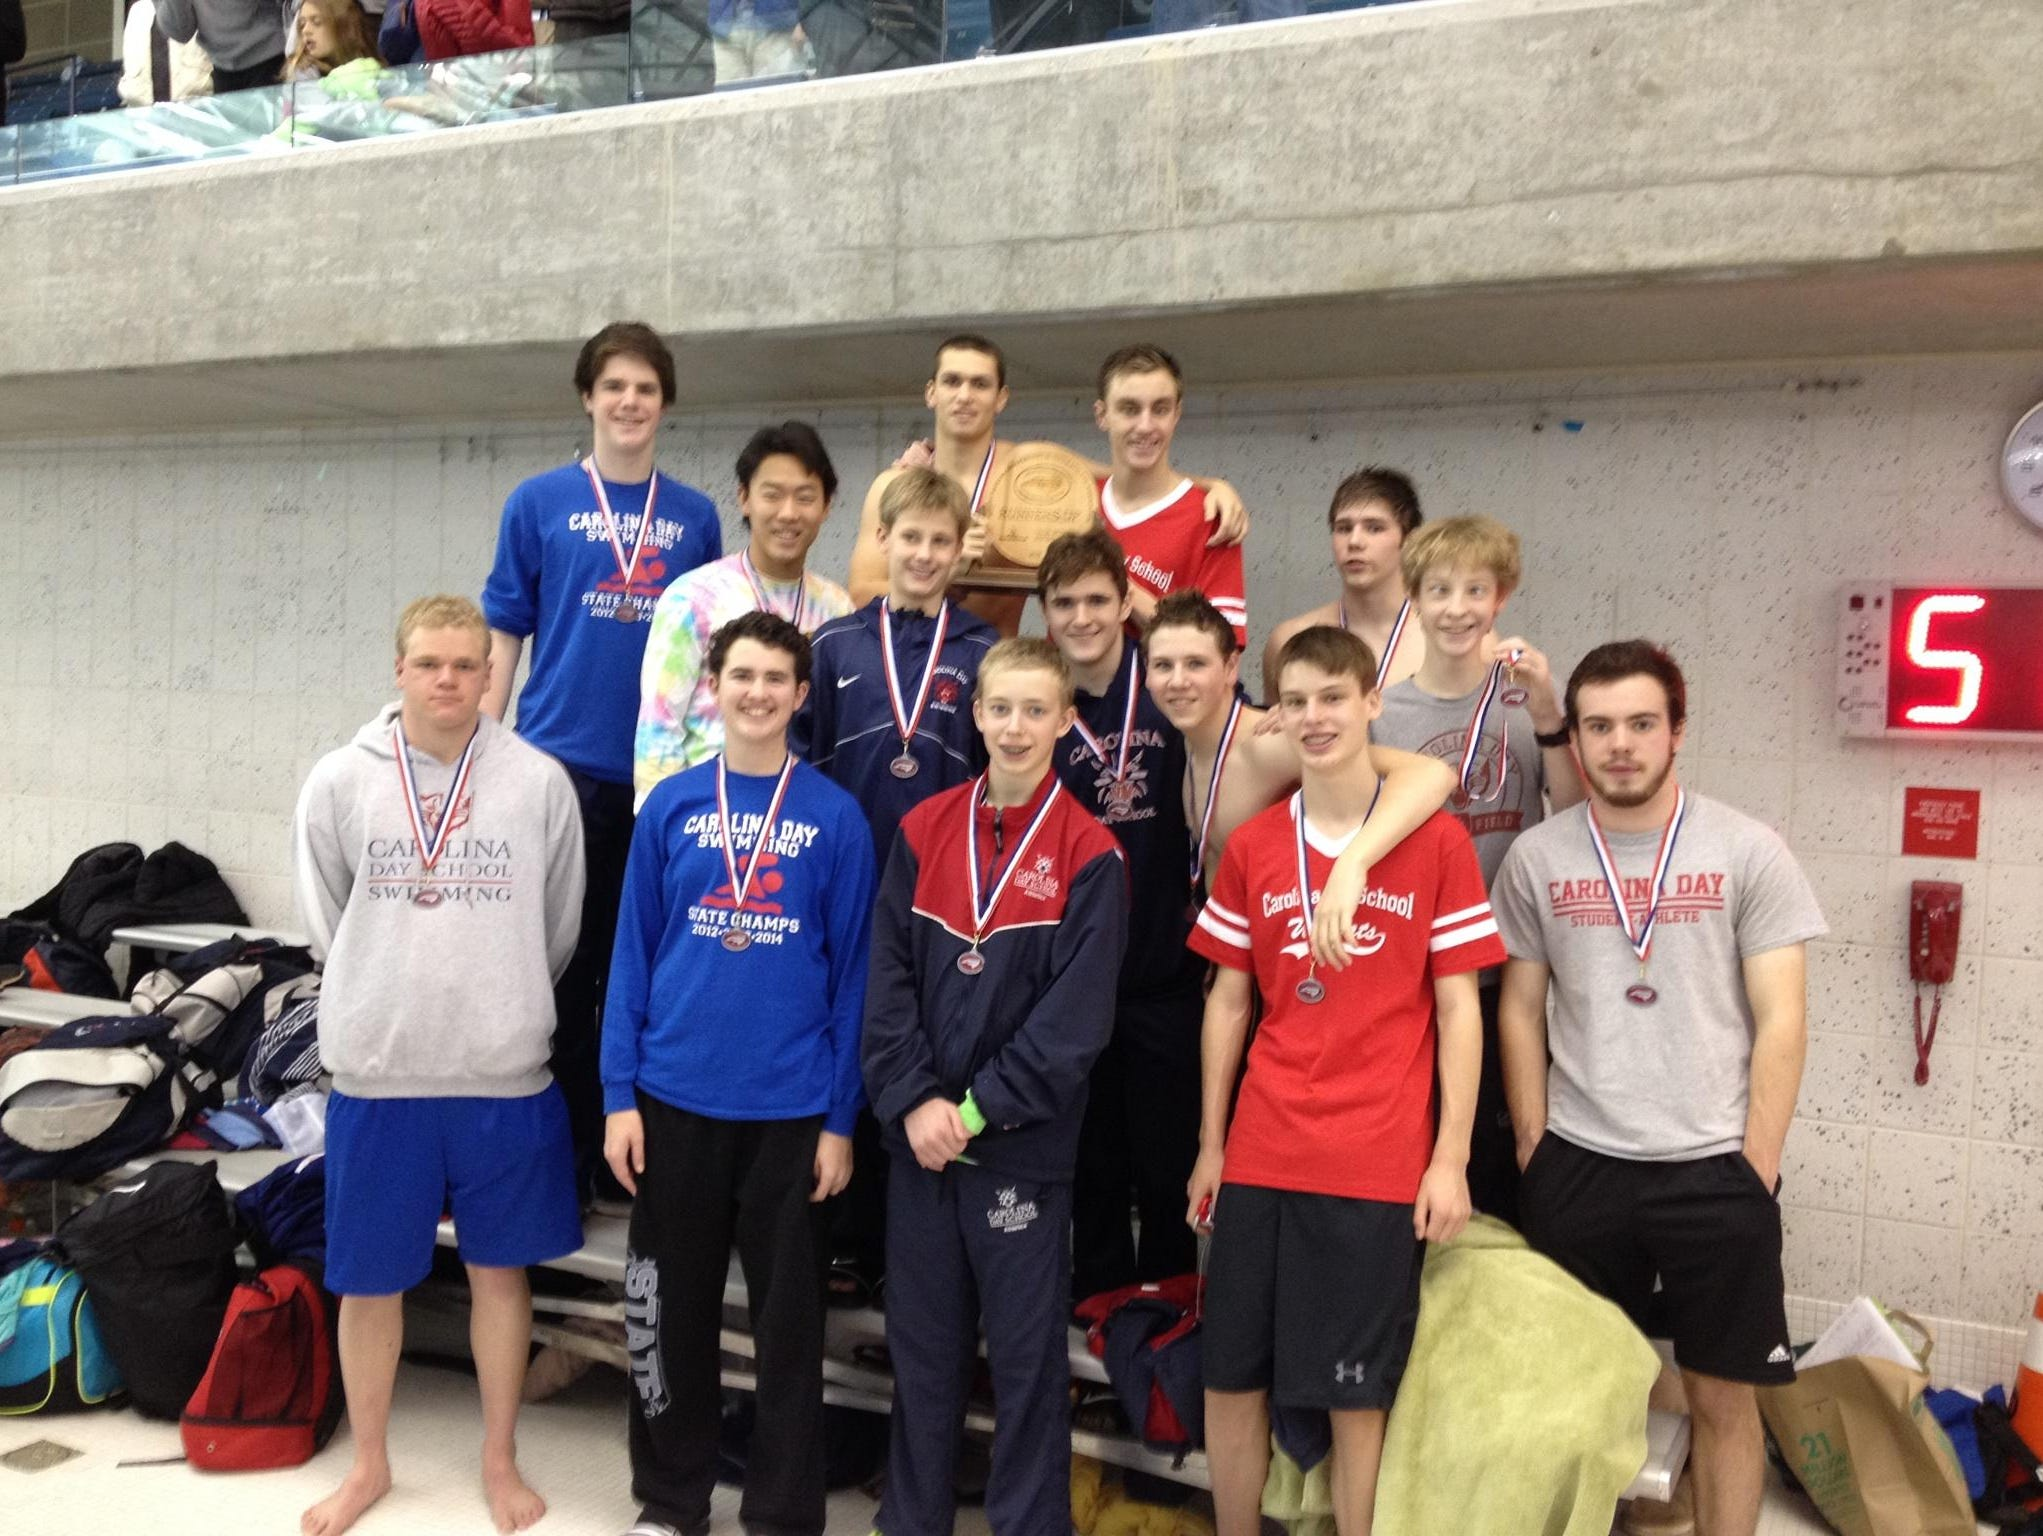 The Carolina Day boys swim team placed second at Monday's NCISAA 1-A/2-A meet in Greensboro.